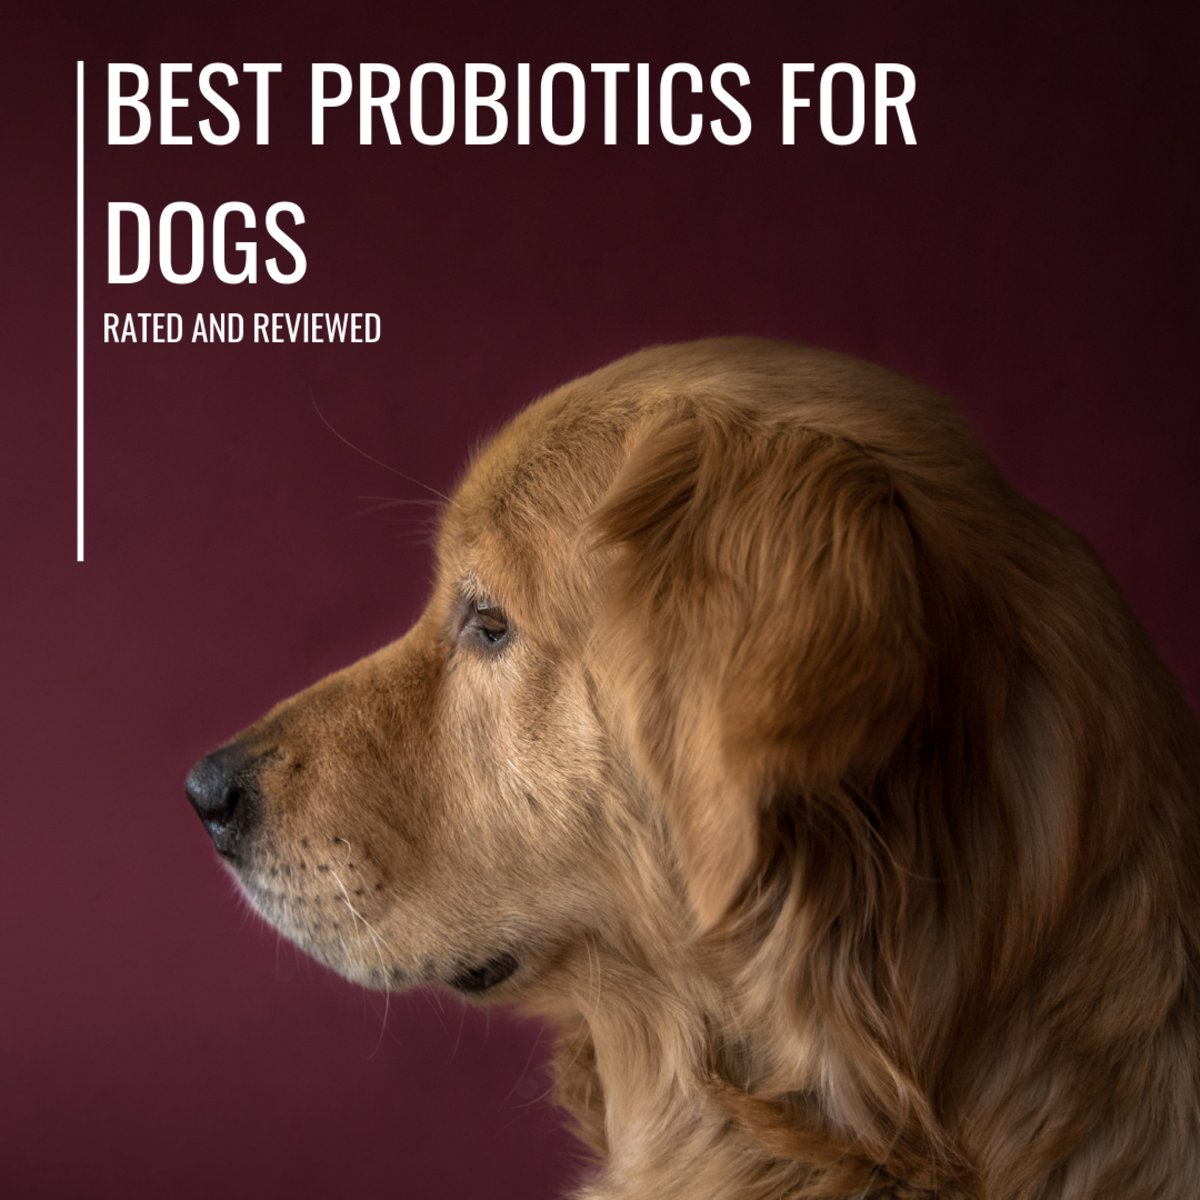 6 Best Probiotics for Dogs With Diarrhea and Allergies (Top-Rated & Reviewed)